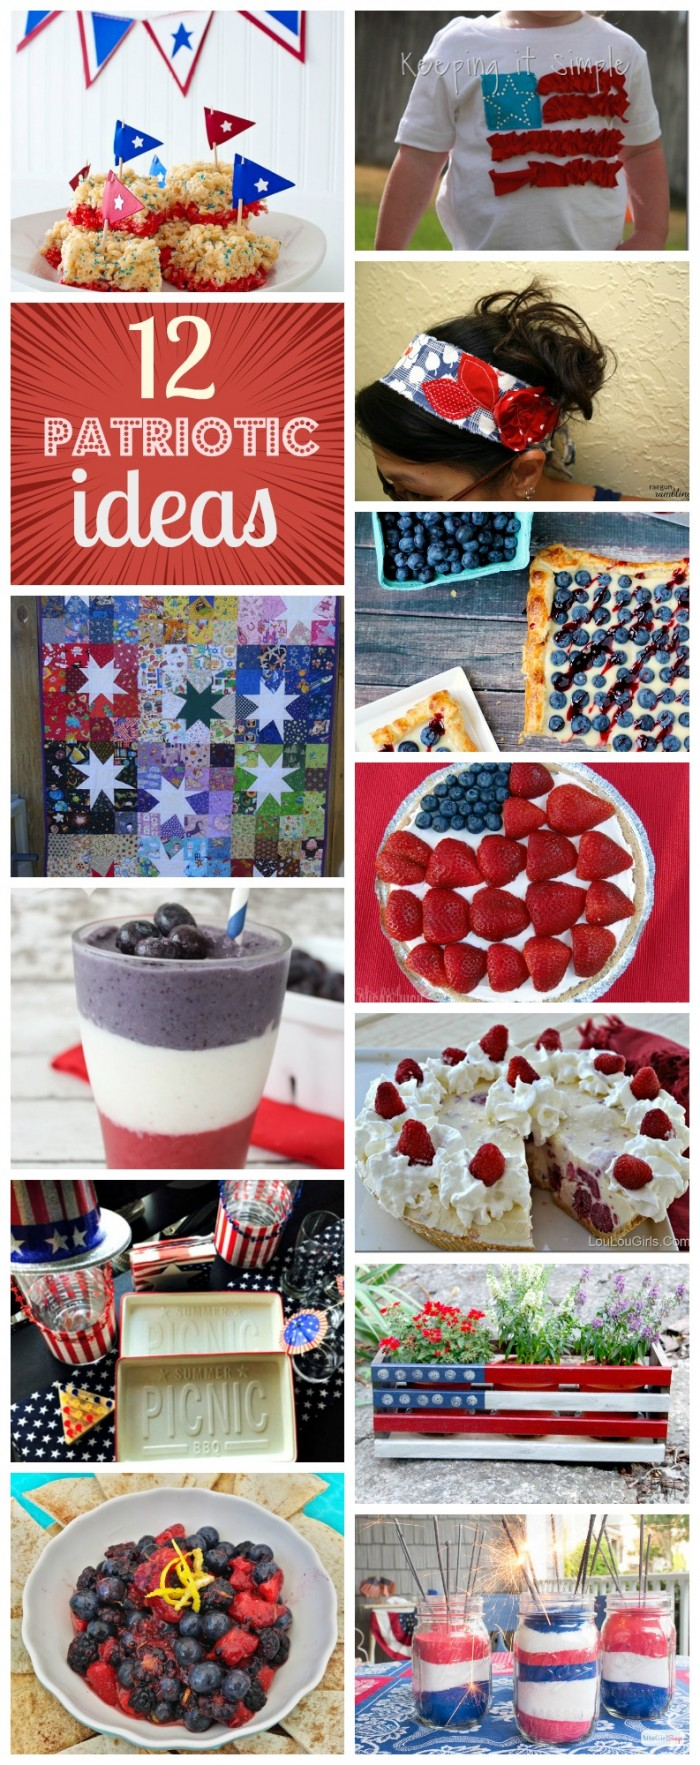 DIY patriotic ideas tutorials recipes and more great for fourth of july and memorial day